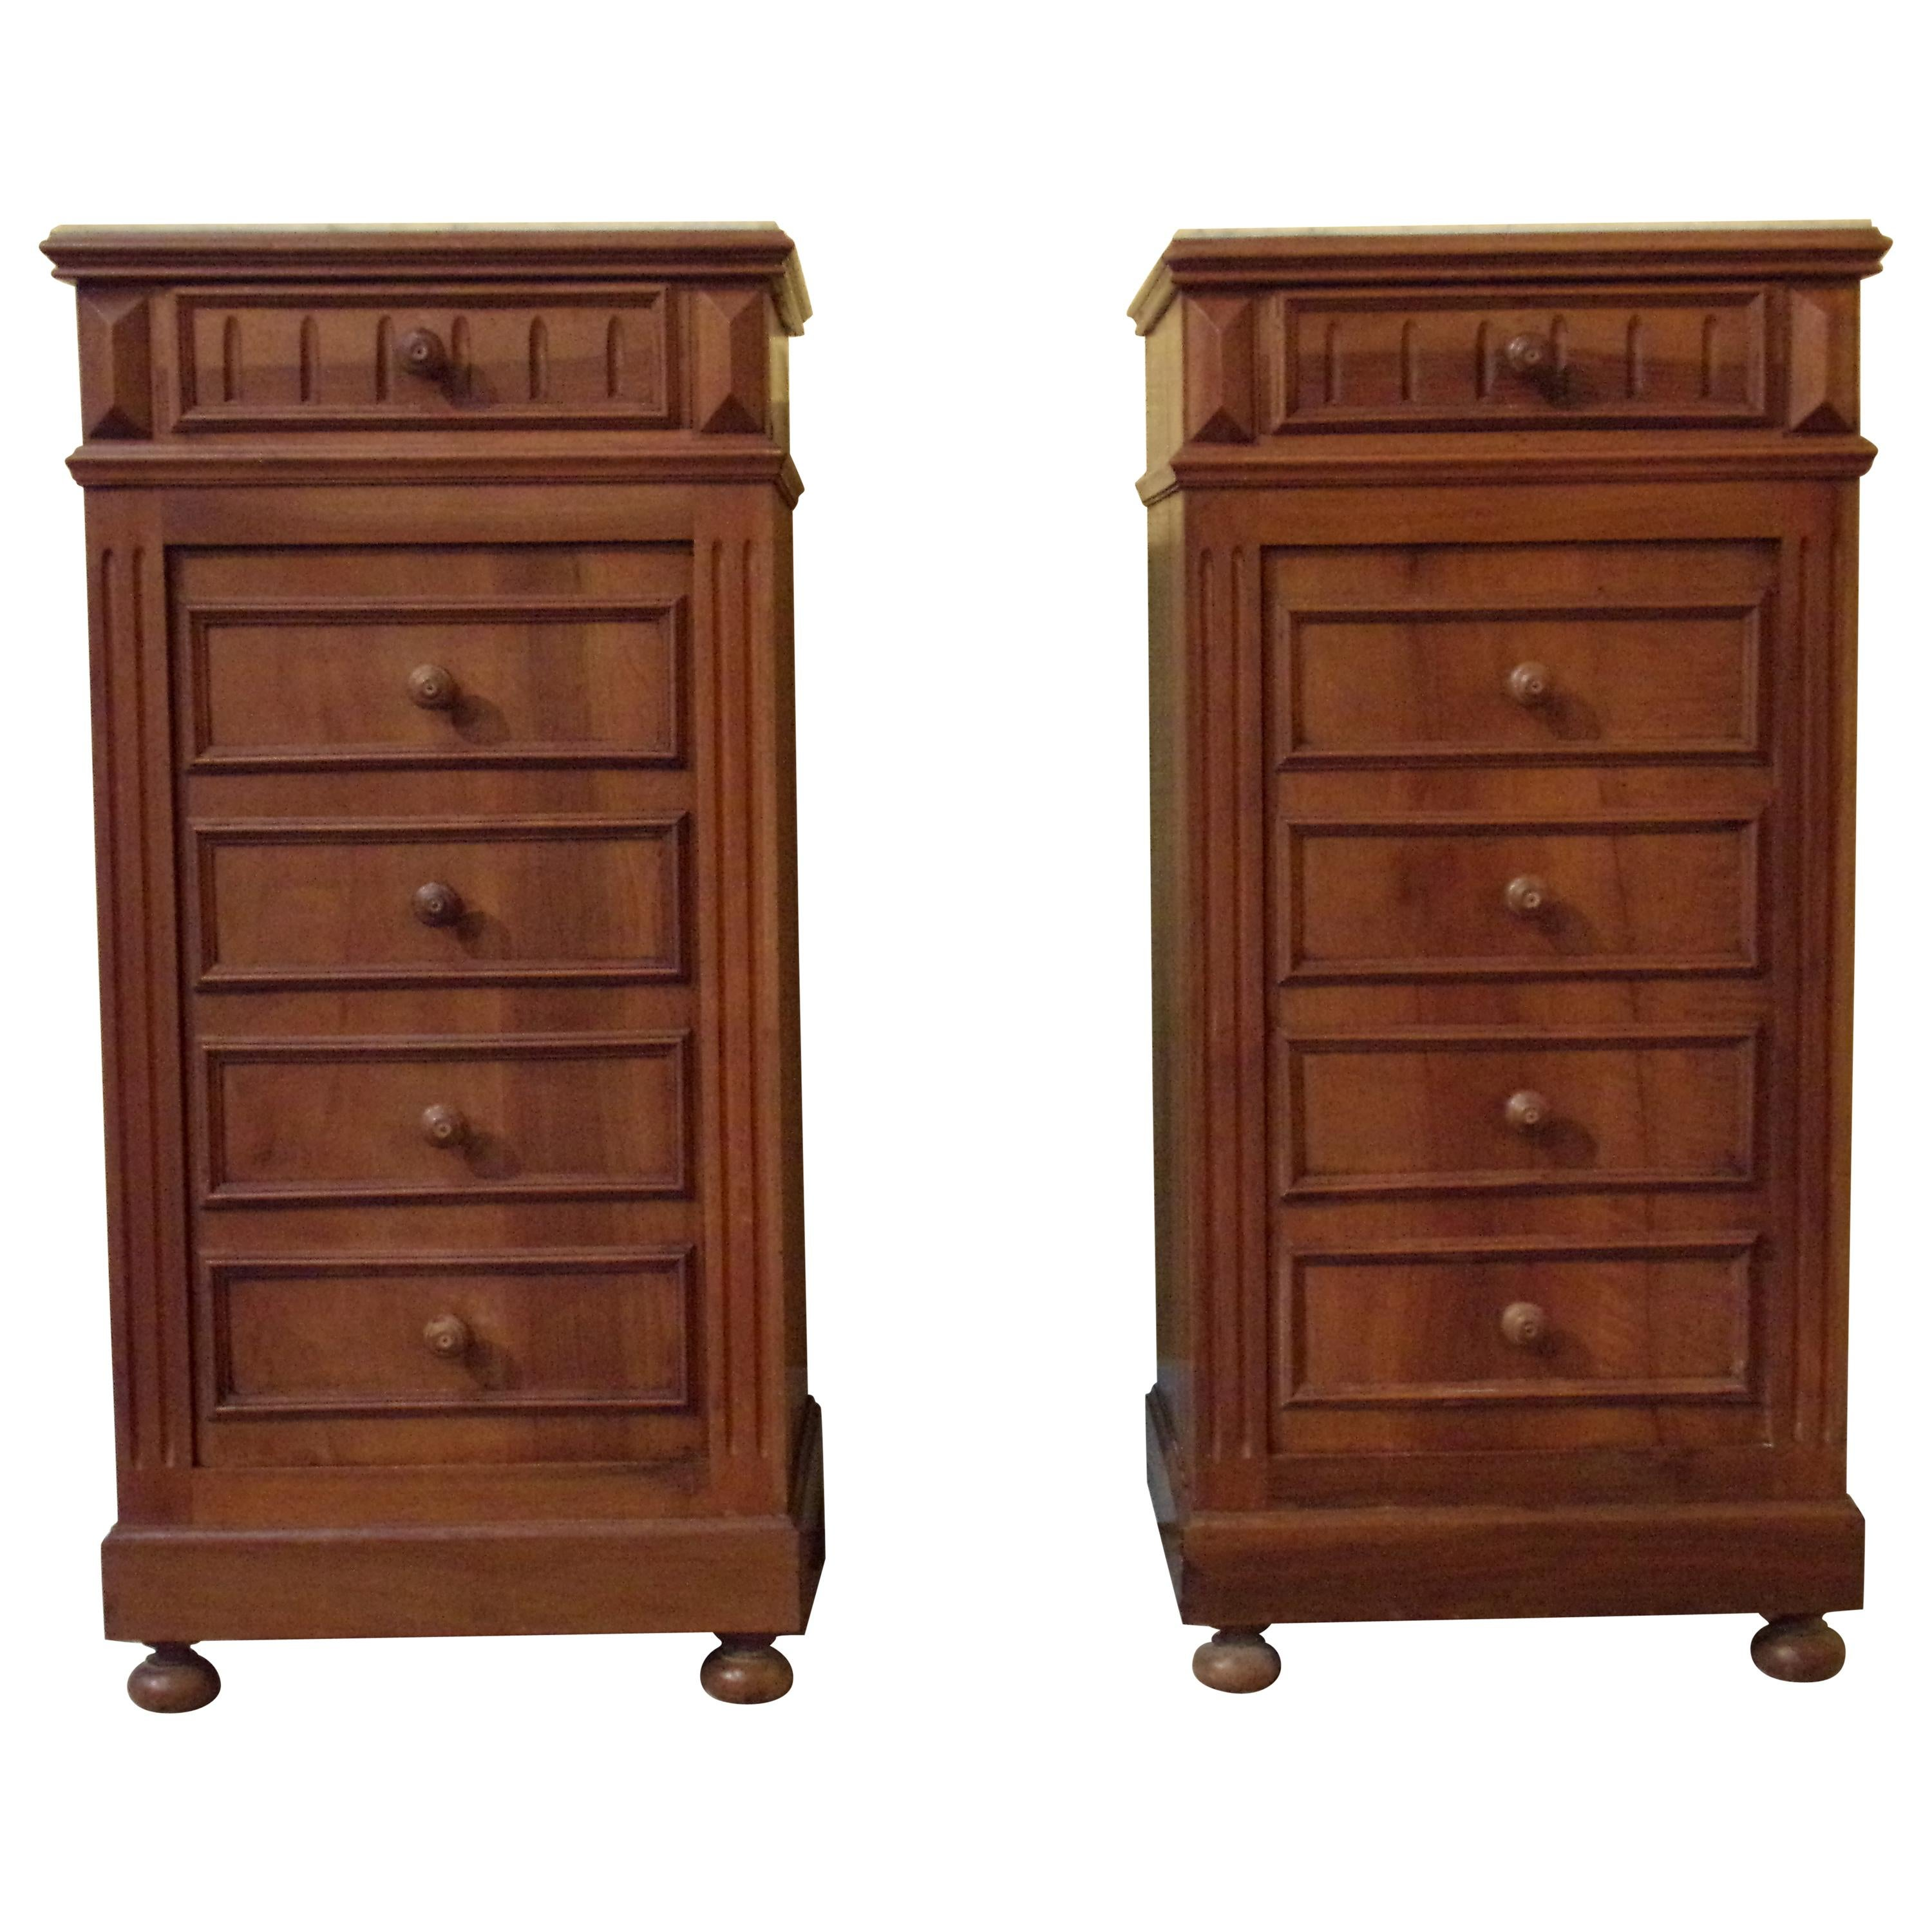 Pair of Bedside Cabinets with Marble Tops, C1890